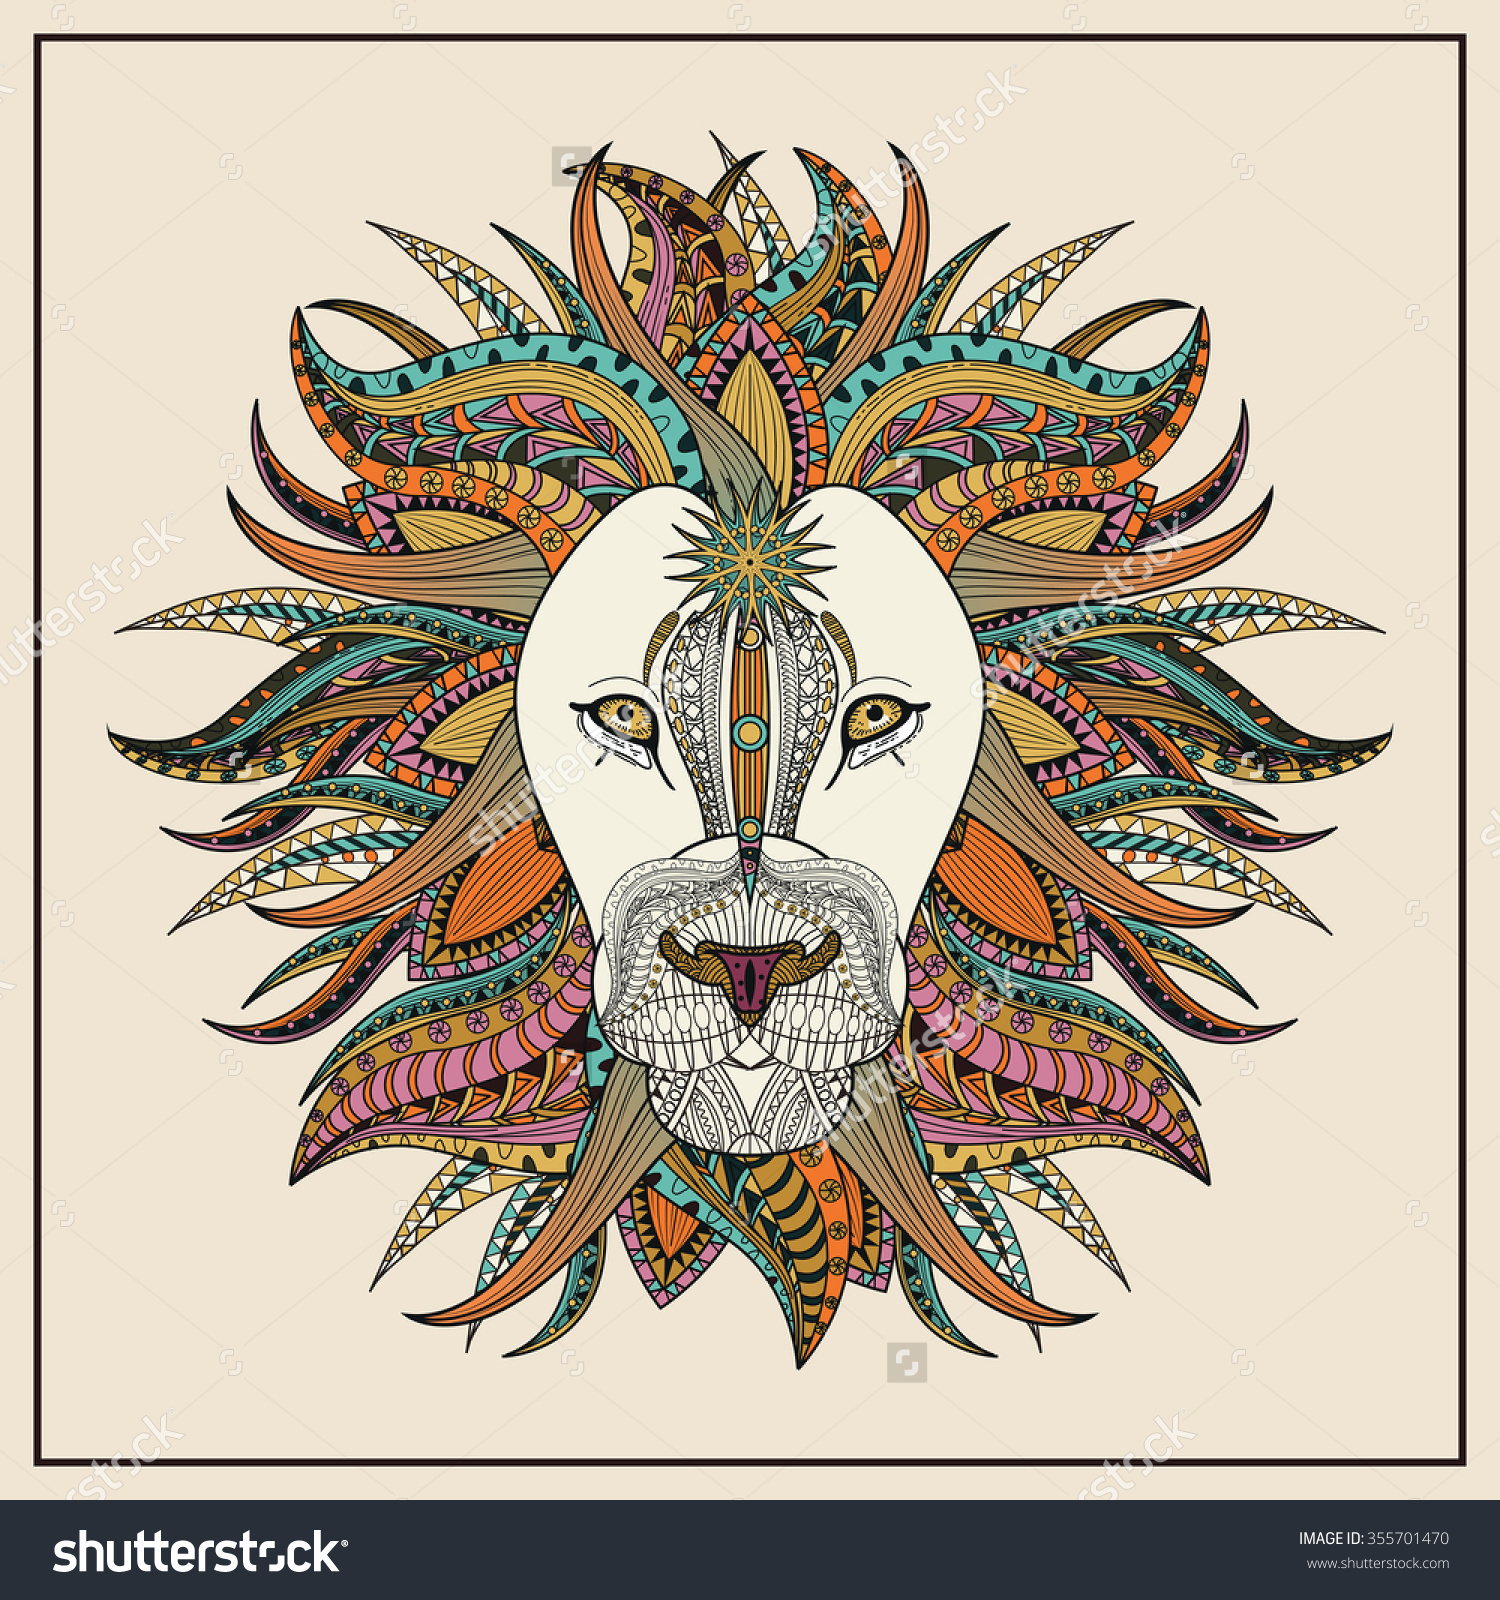 Lion colorings - Imposing Lion Coloring Page In Exquisite Line